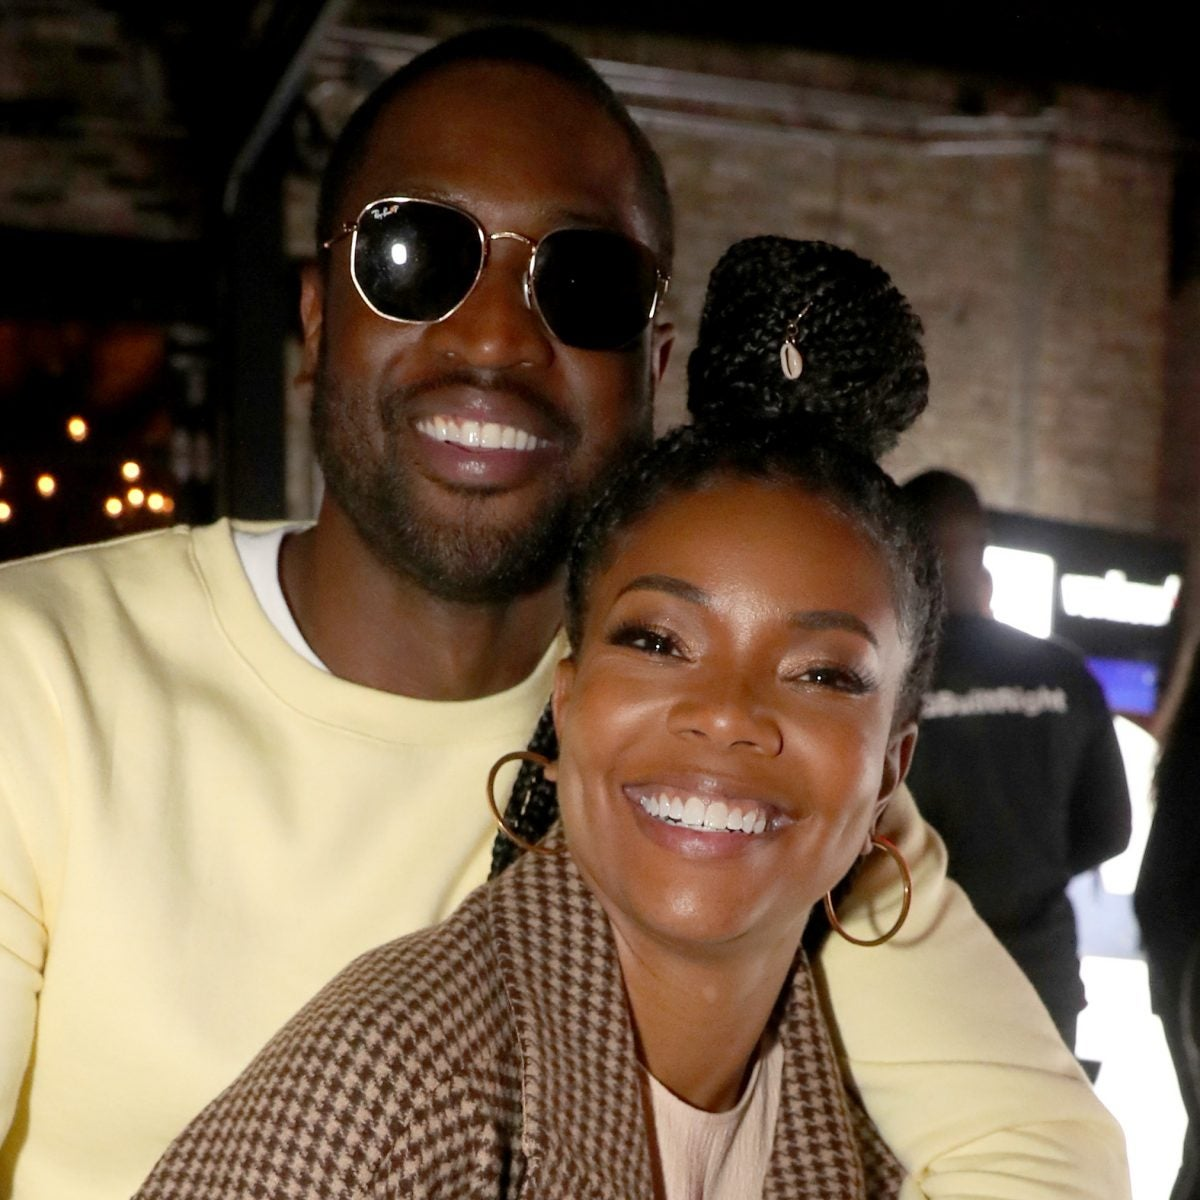 Gabrielle Union and Dwyane Wade Celebrate Their 7th Anniversary in Style